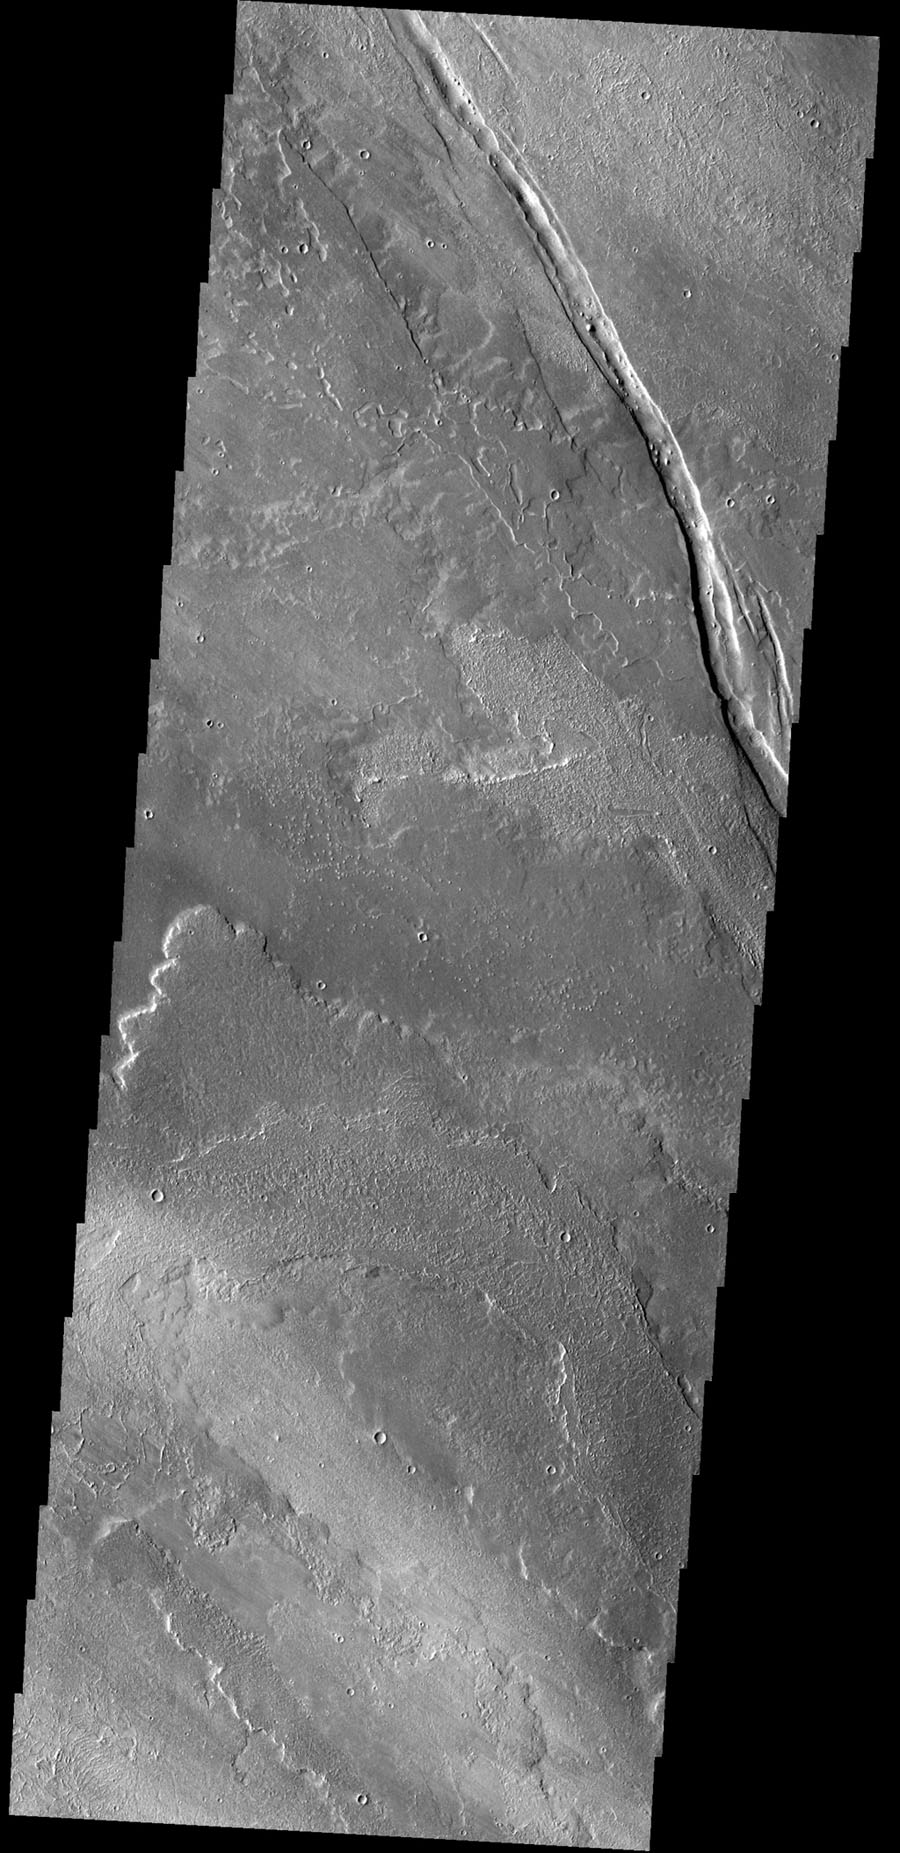 The graben in this image from NASA's 2001 Mars Odyssey spacecraft is Cyane Fossae. The lava flows are part of the extensive Tharsis volcanic flows.